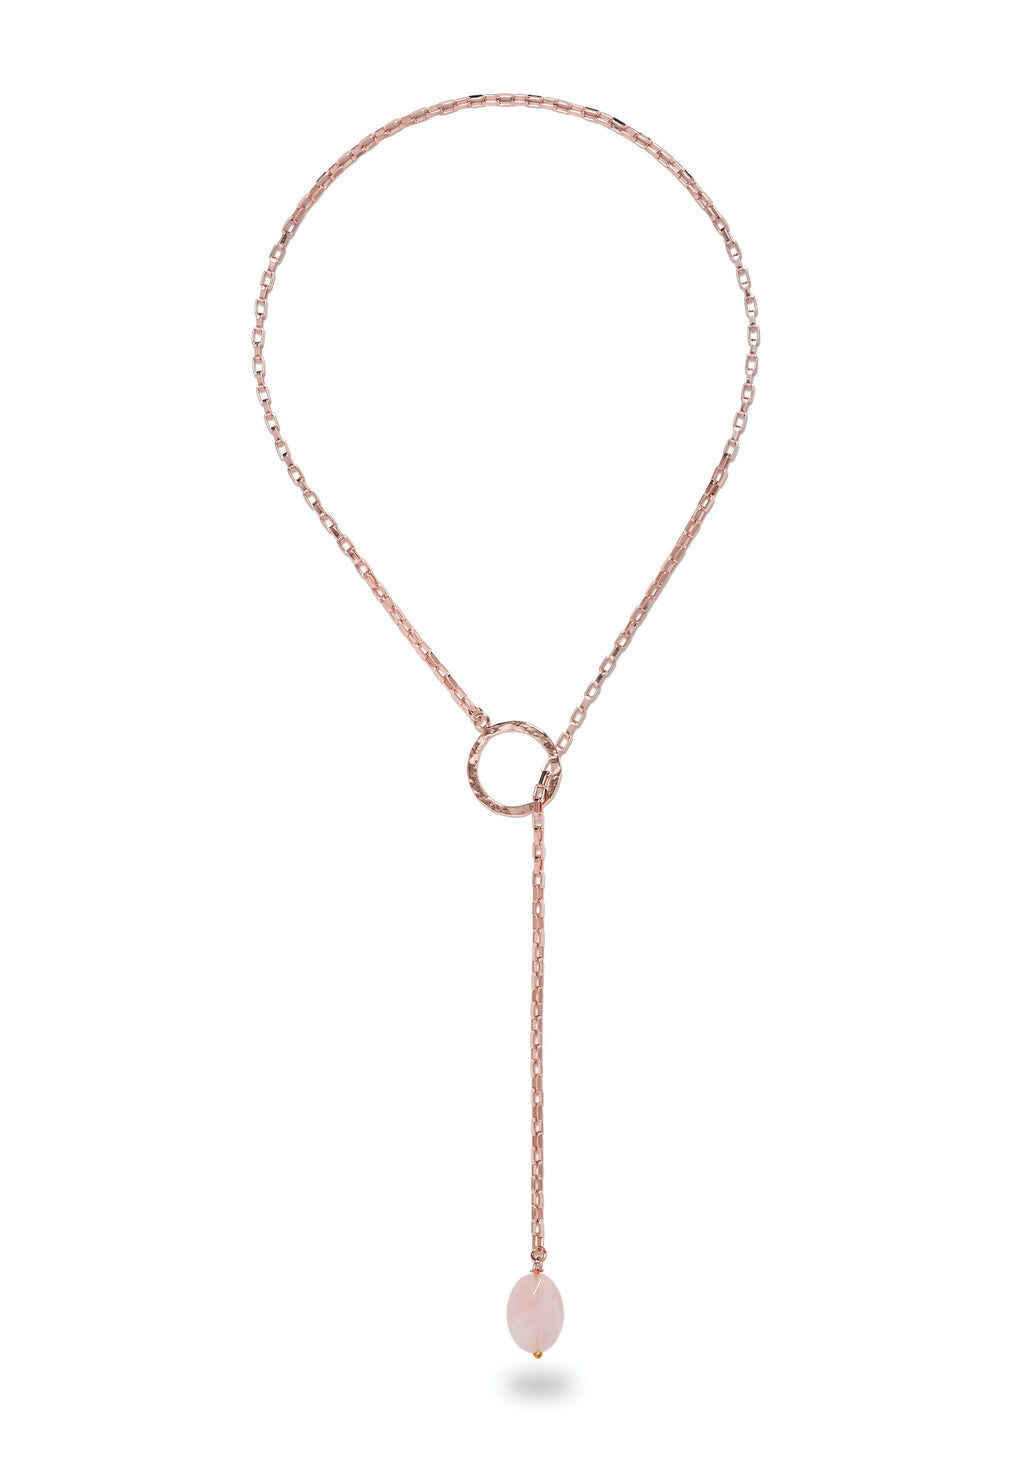 CHARA Rose Gold Lariat with Rose Quartz Necklace